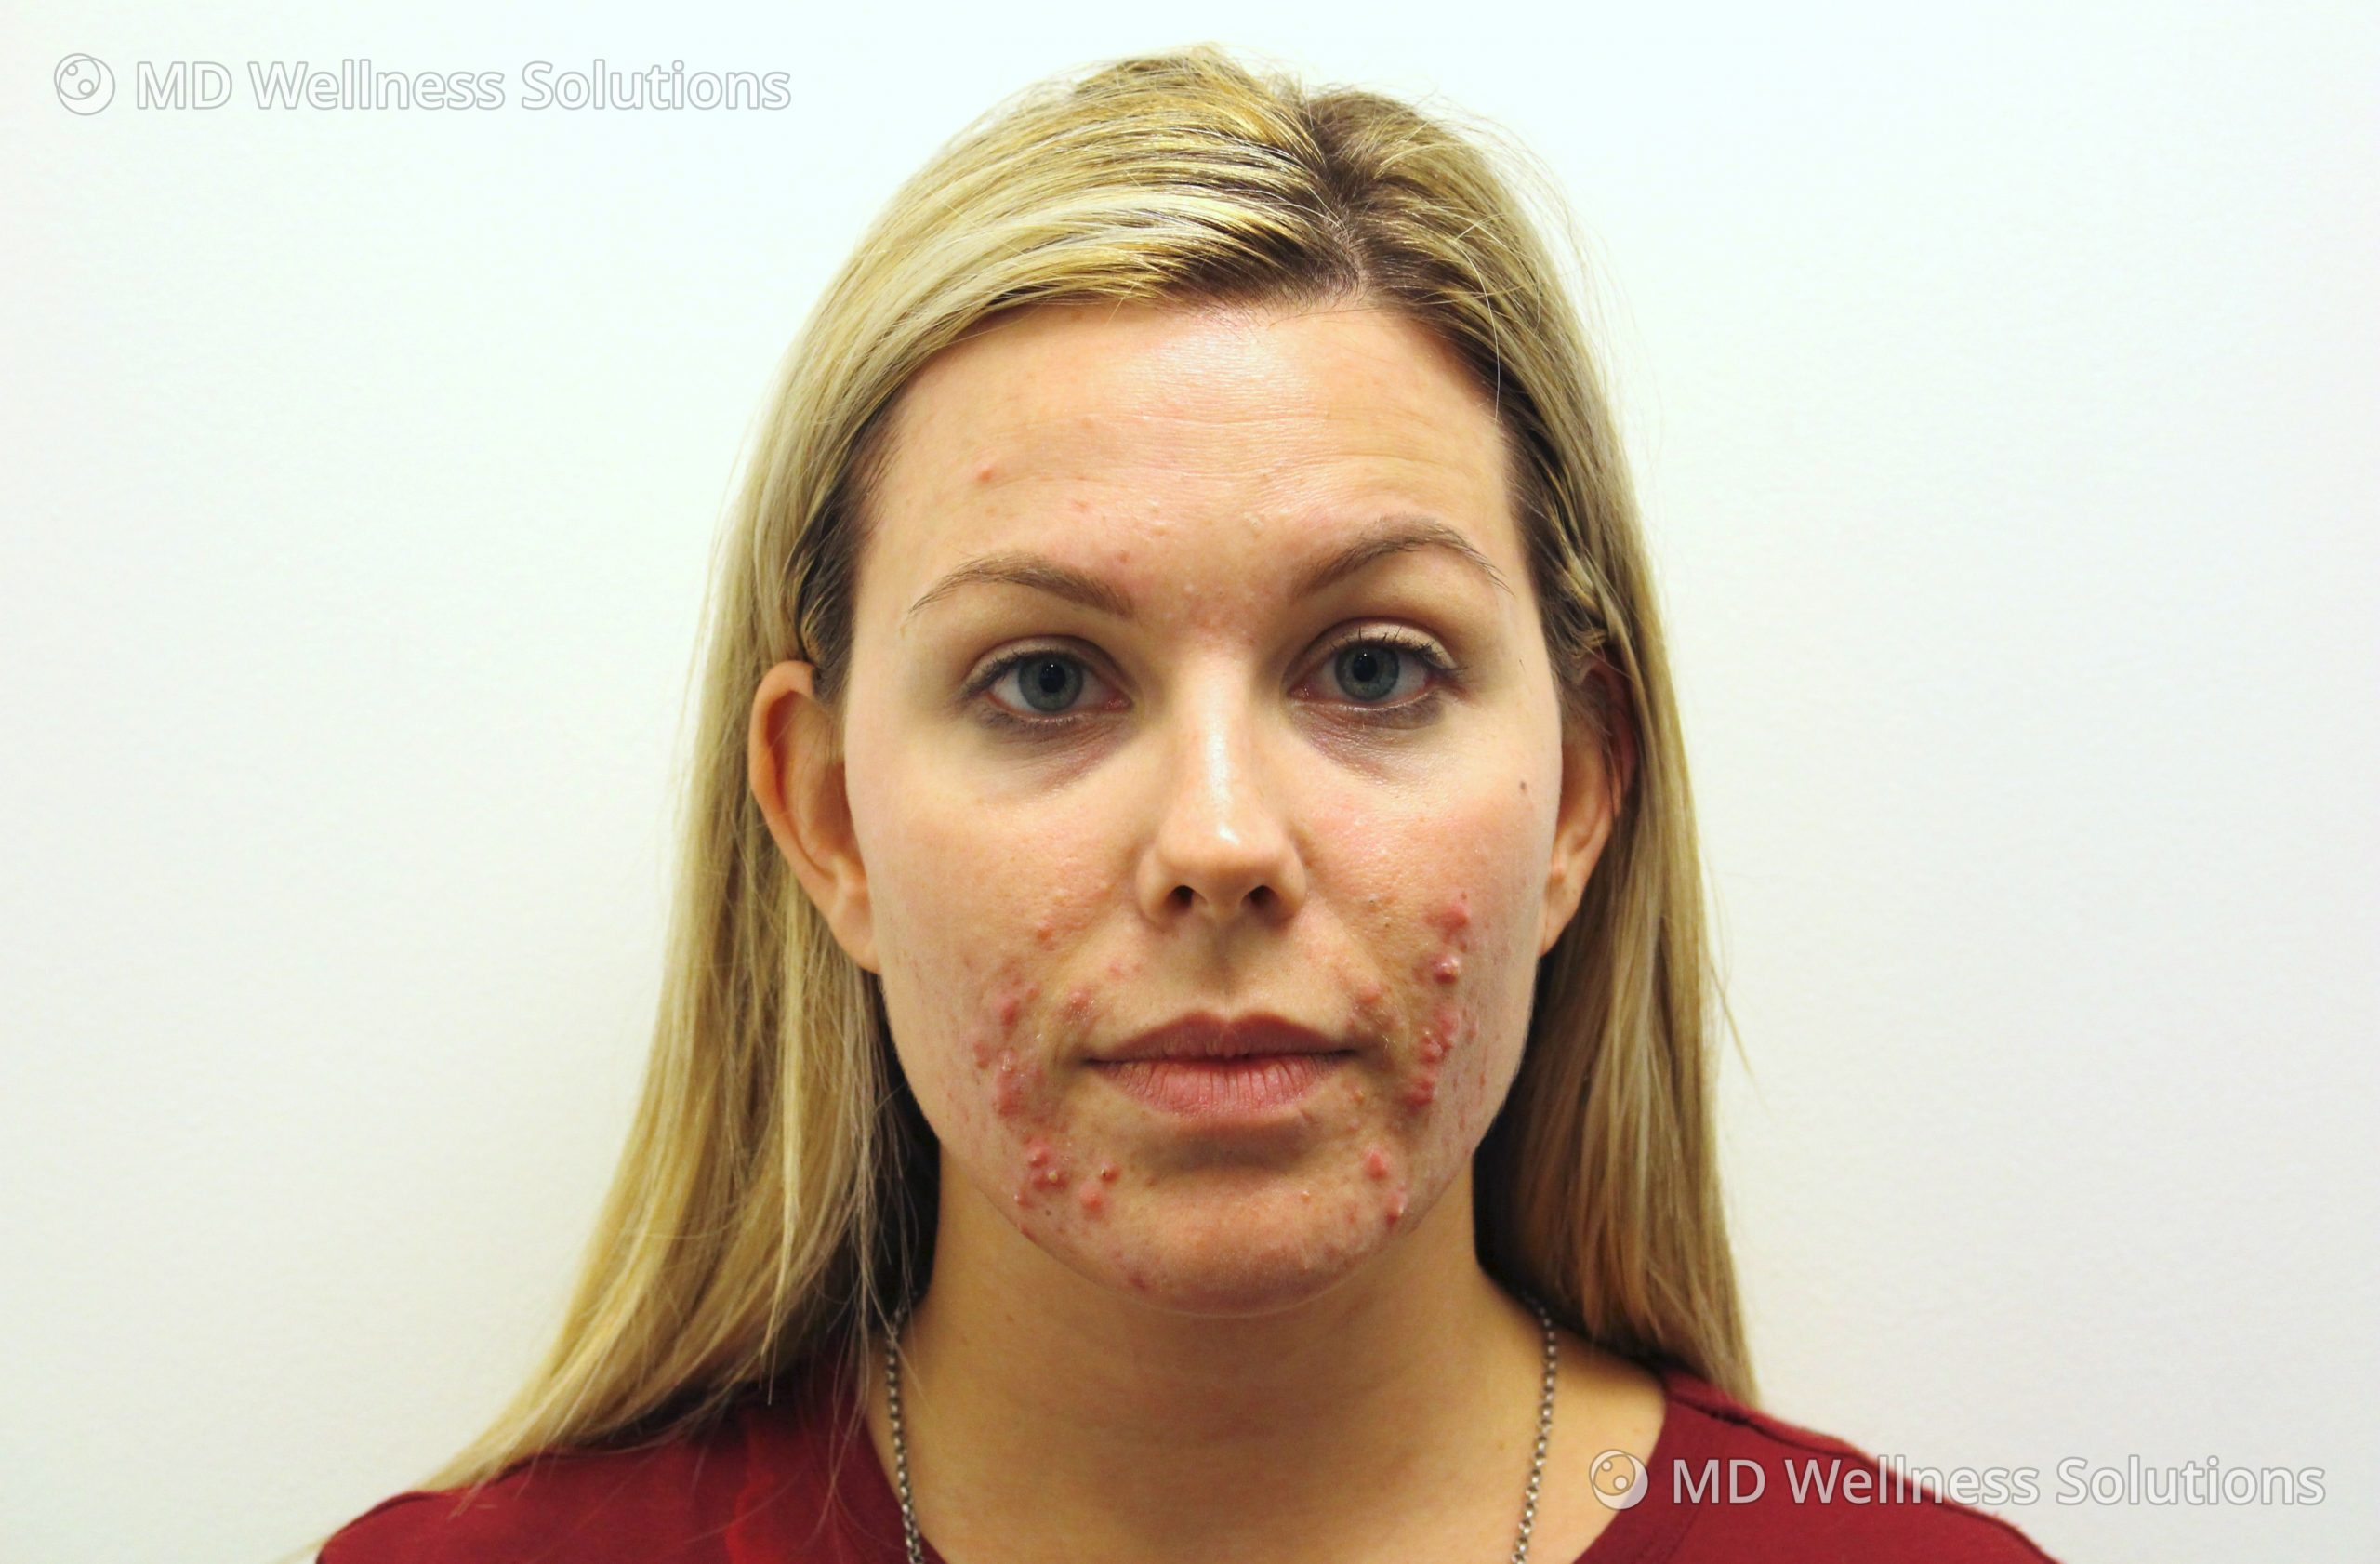 25-34 year old woman before acne treatment